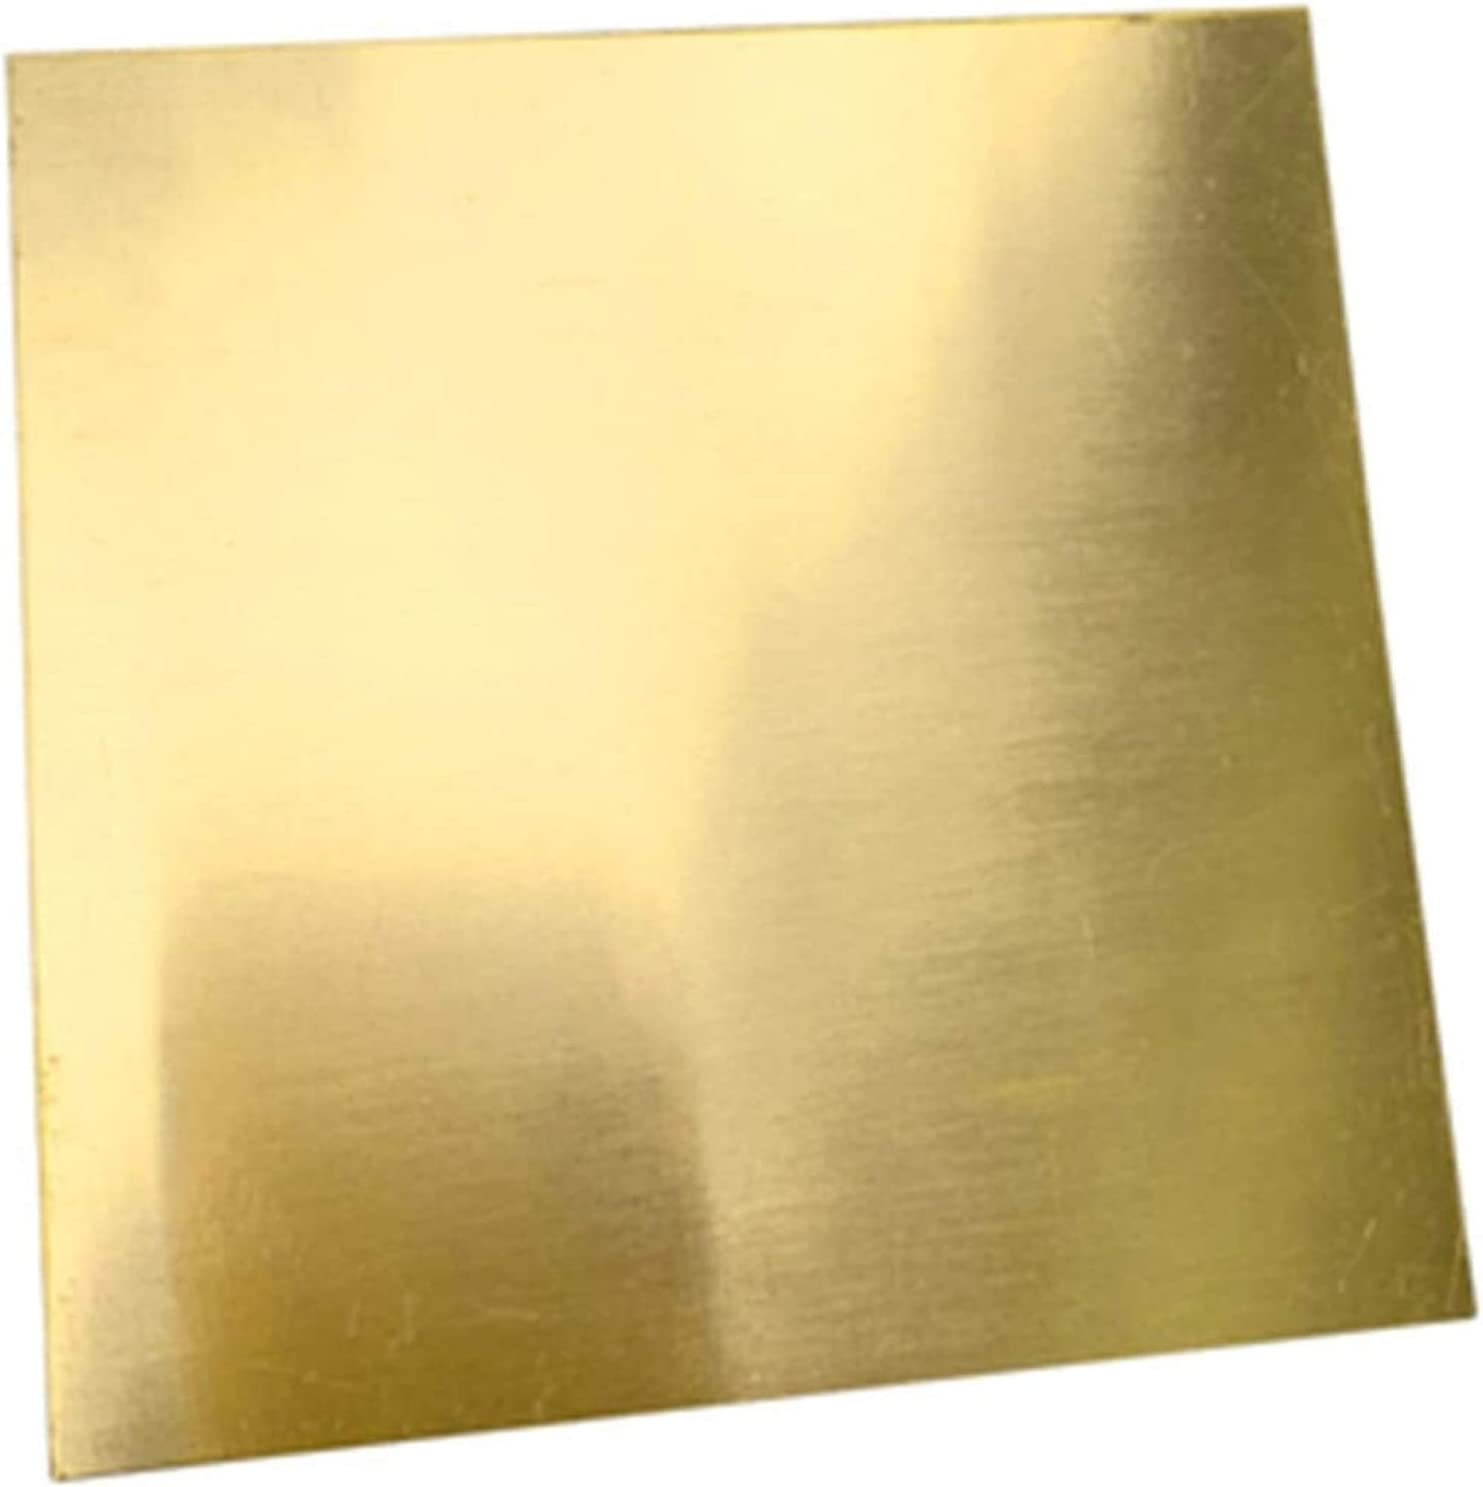 Wzqwzj 1 Pieces 200mmx200mm Translated Houston Mall Copper Sheet Good Me Plate Has Metal